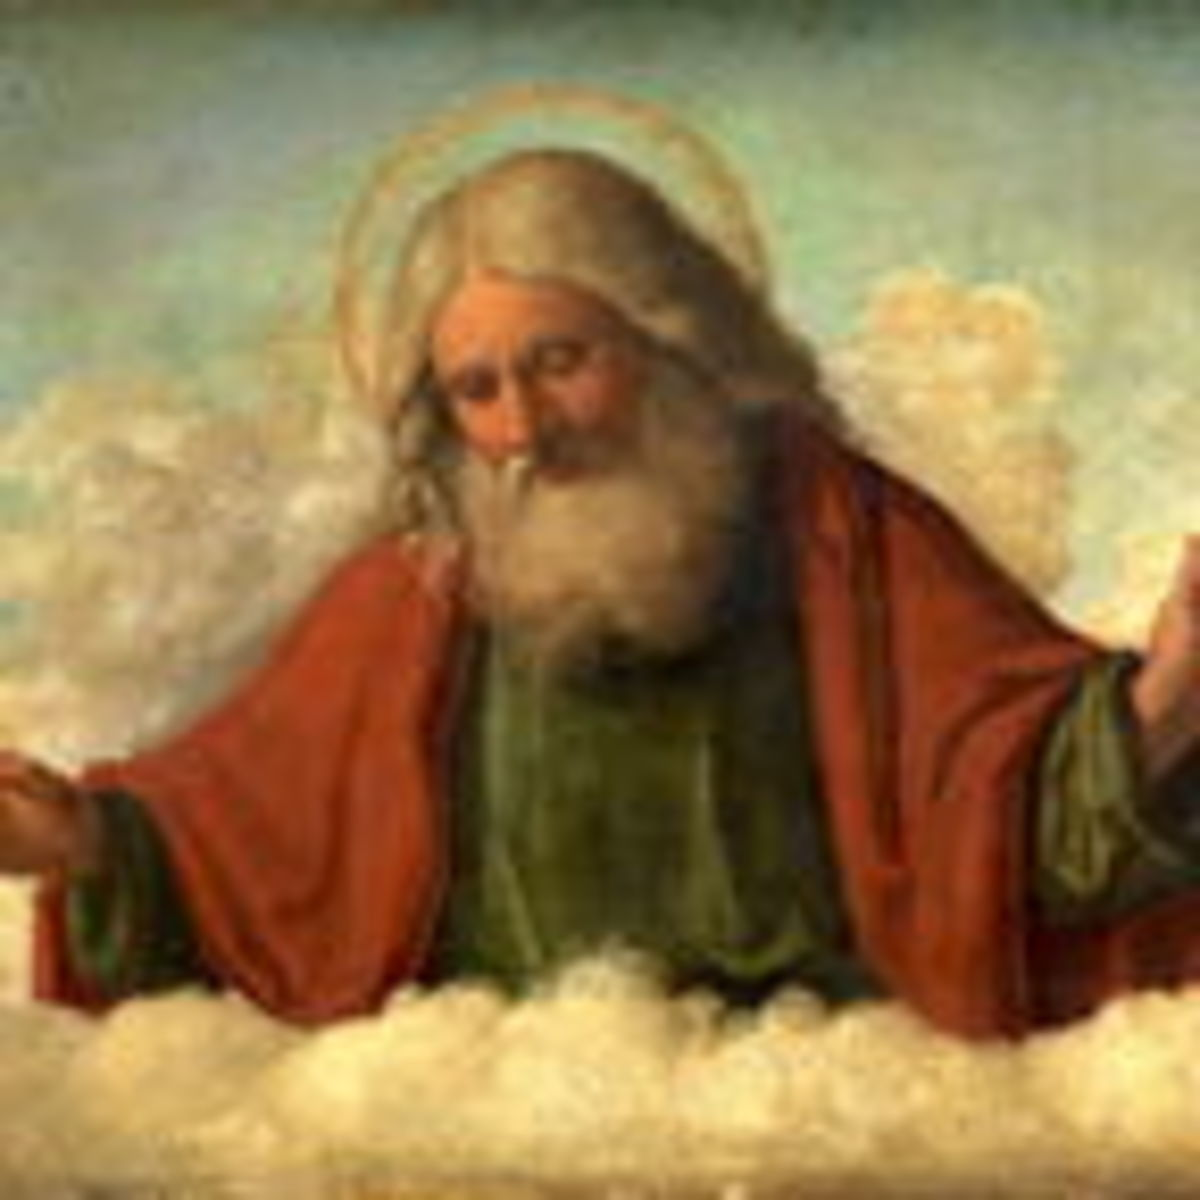 Why Do People Believe in God? | Psychology Today